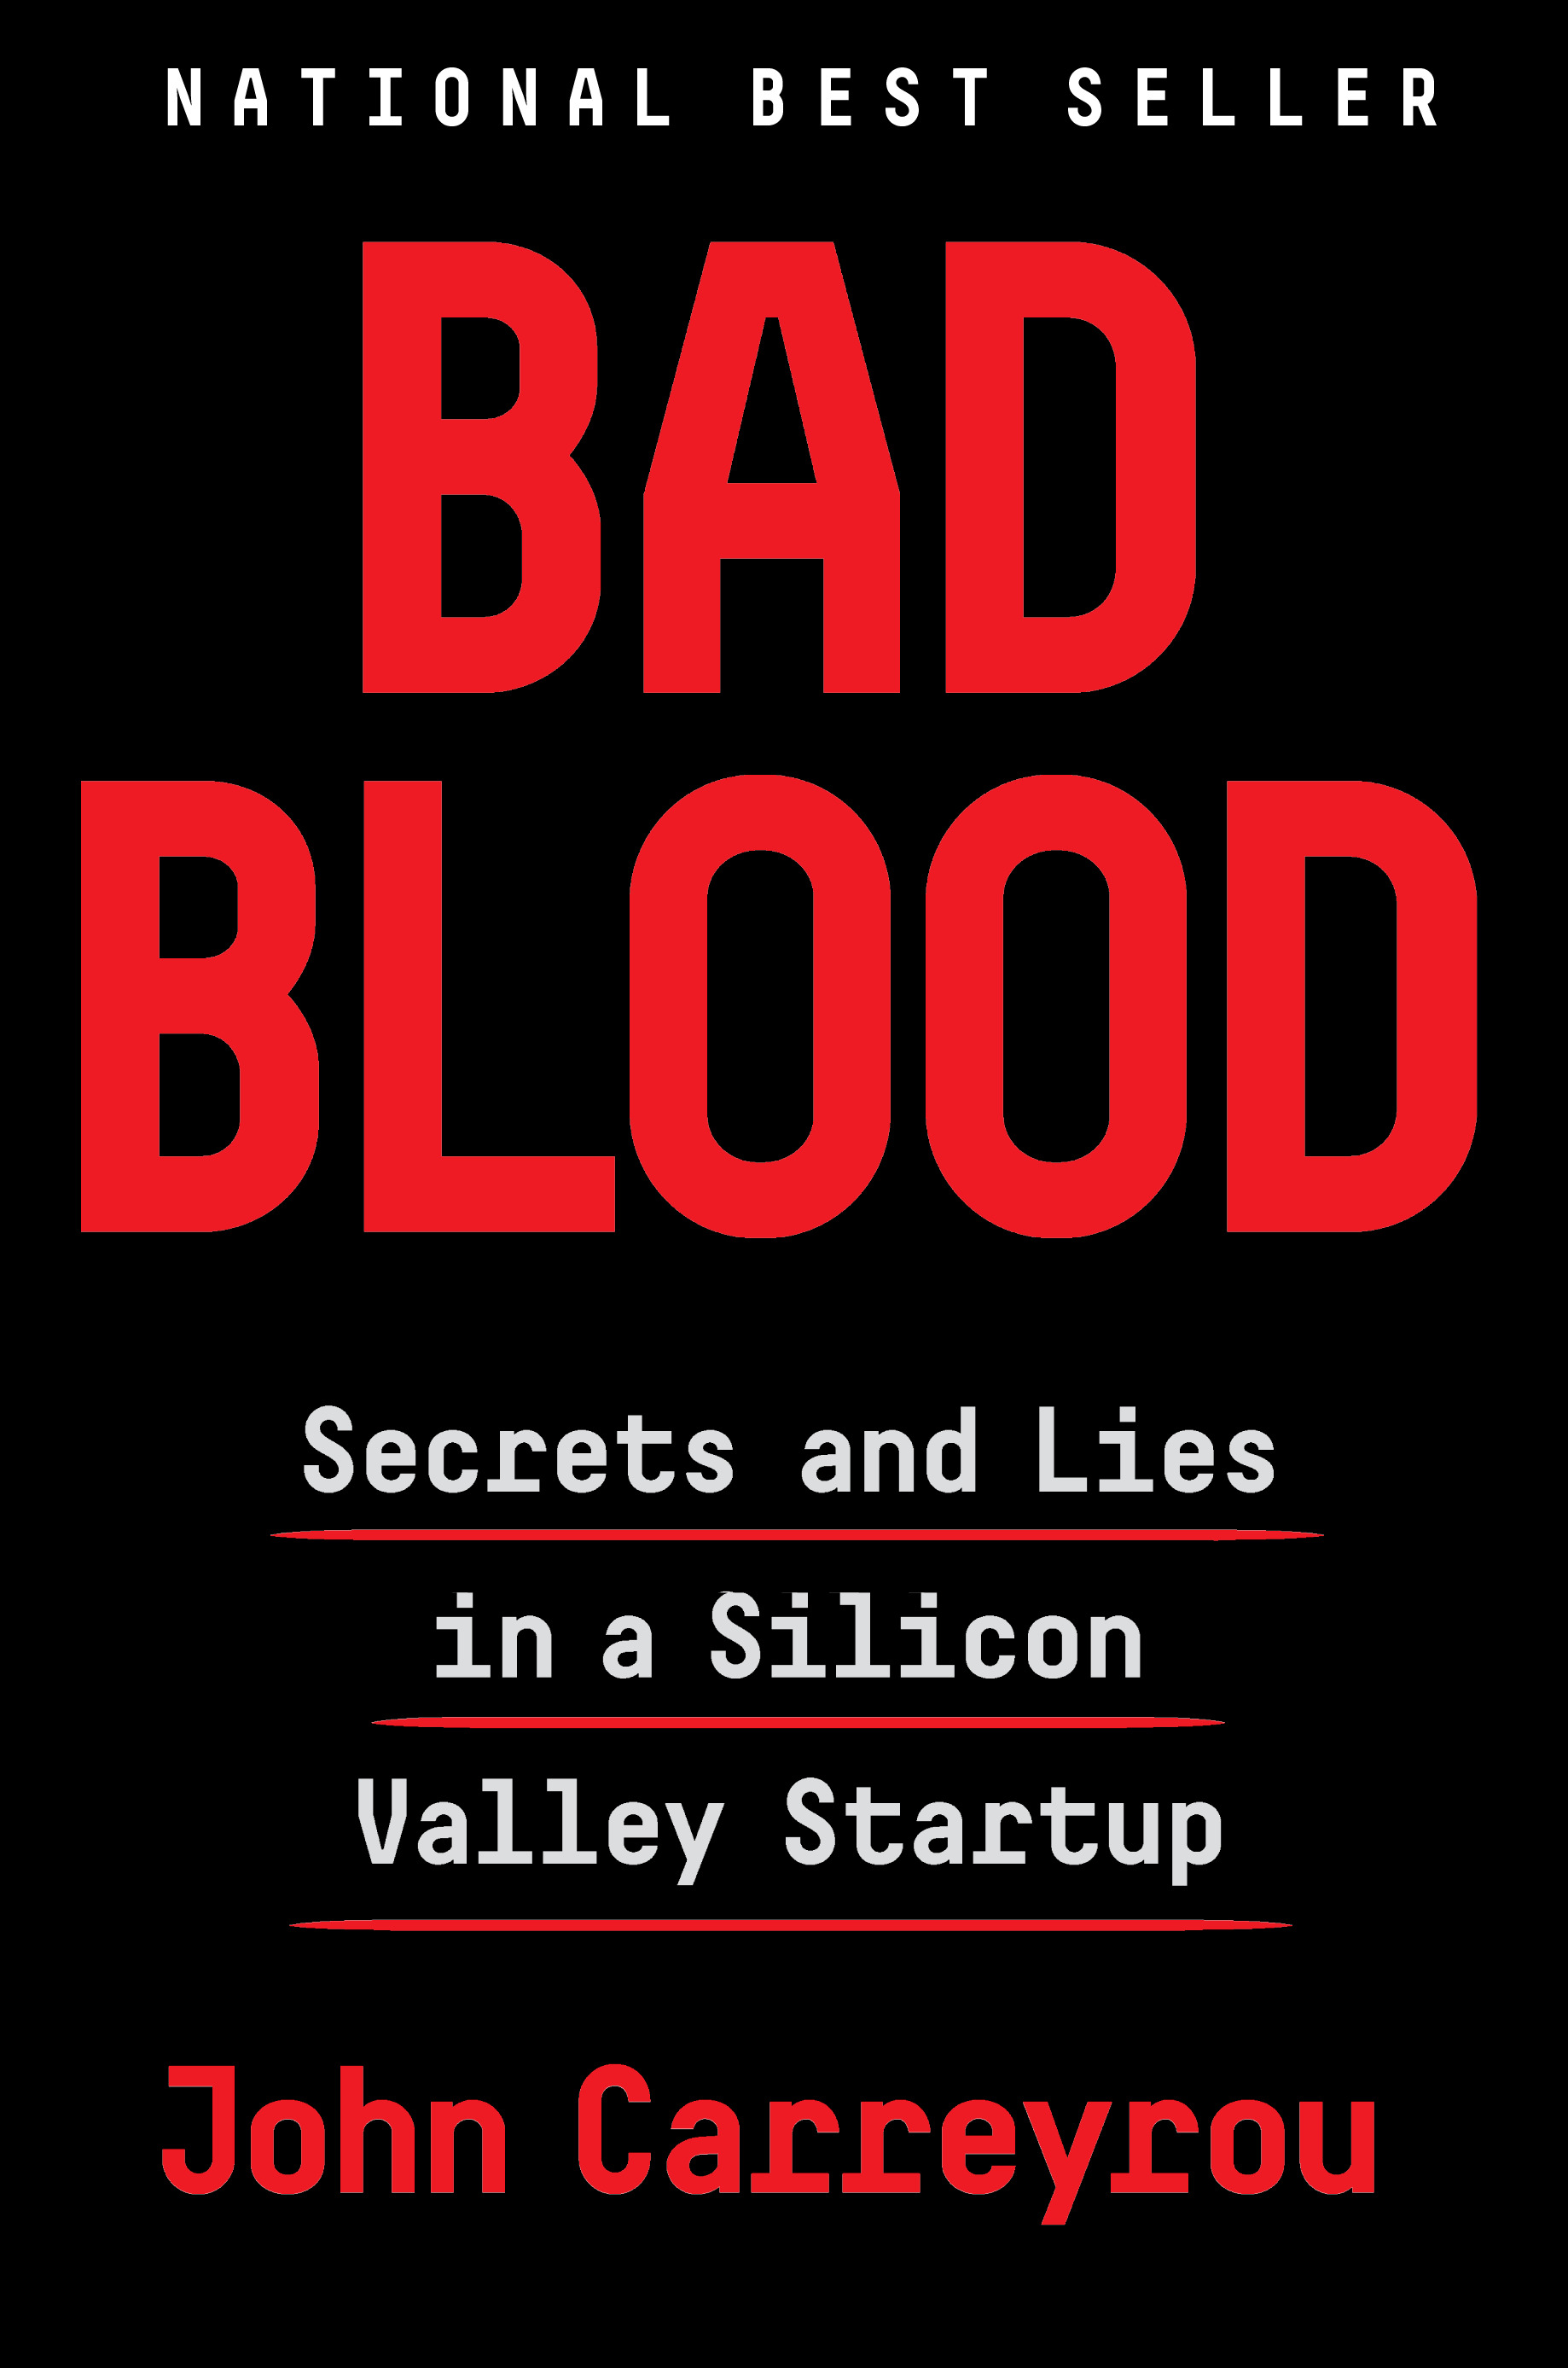 """Bad Blood: Secrets and Lies in a Silicon Valley Startup "" by John Carreyrou (Image: Courtesy Knopf)"